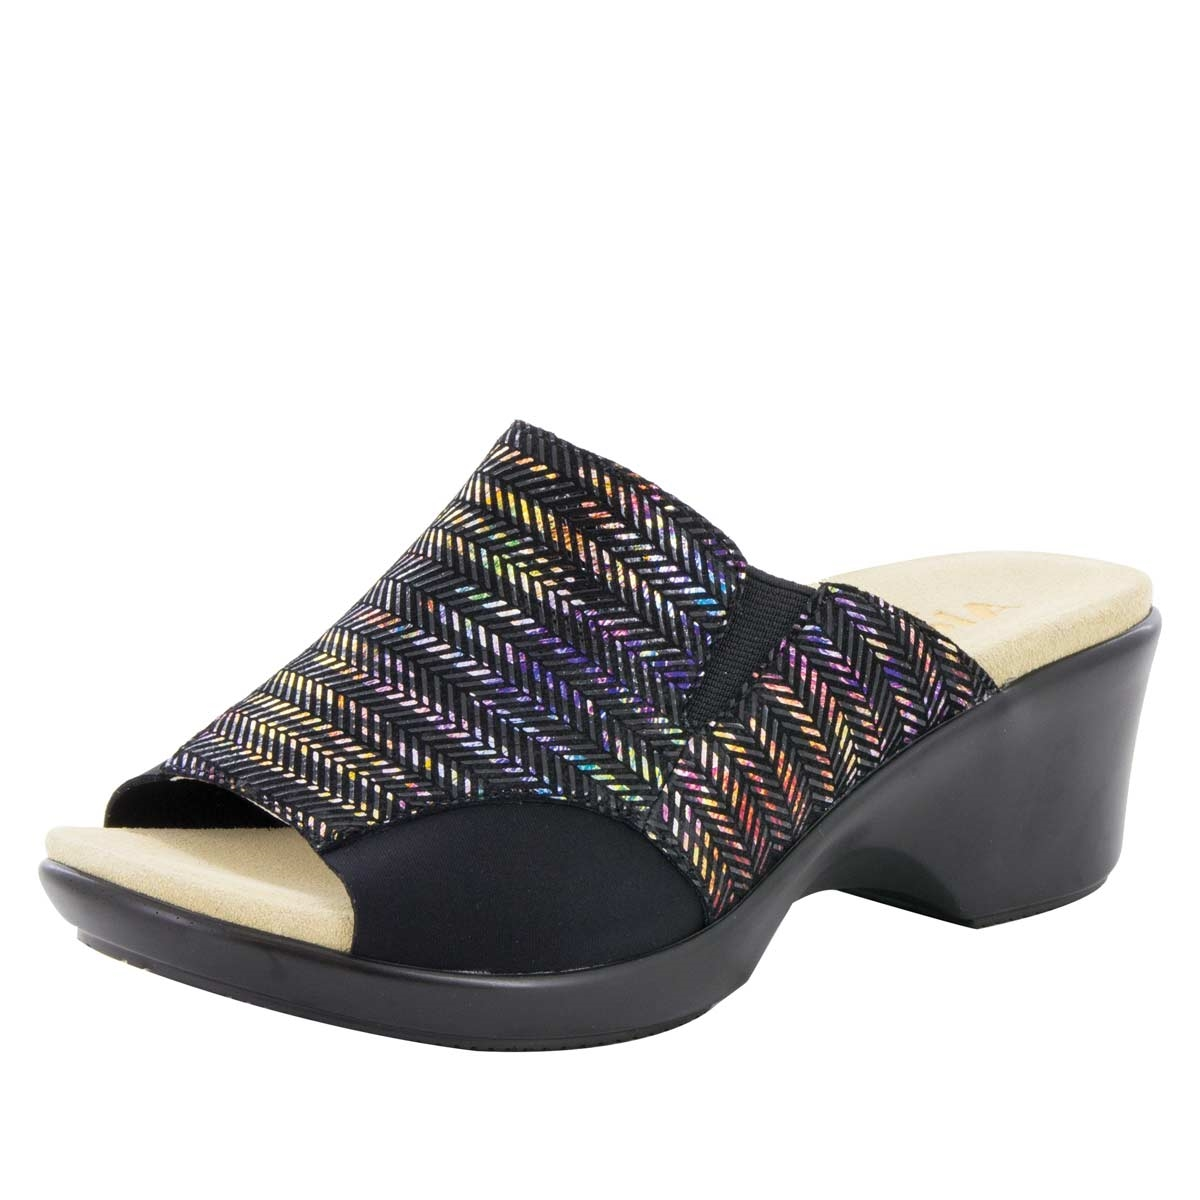 best place cheap price sneakernews Alegria Leather Slide Wedge Sandals - Ryli wiki cheap price yALMh8